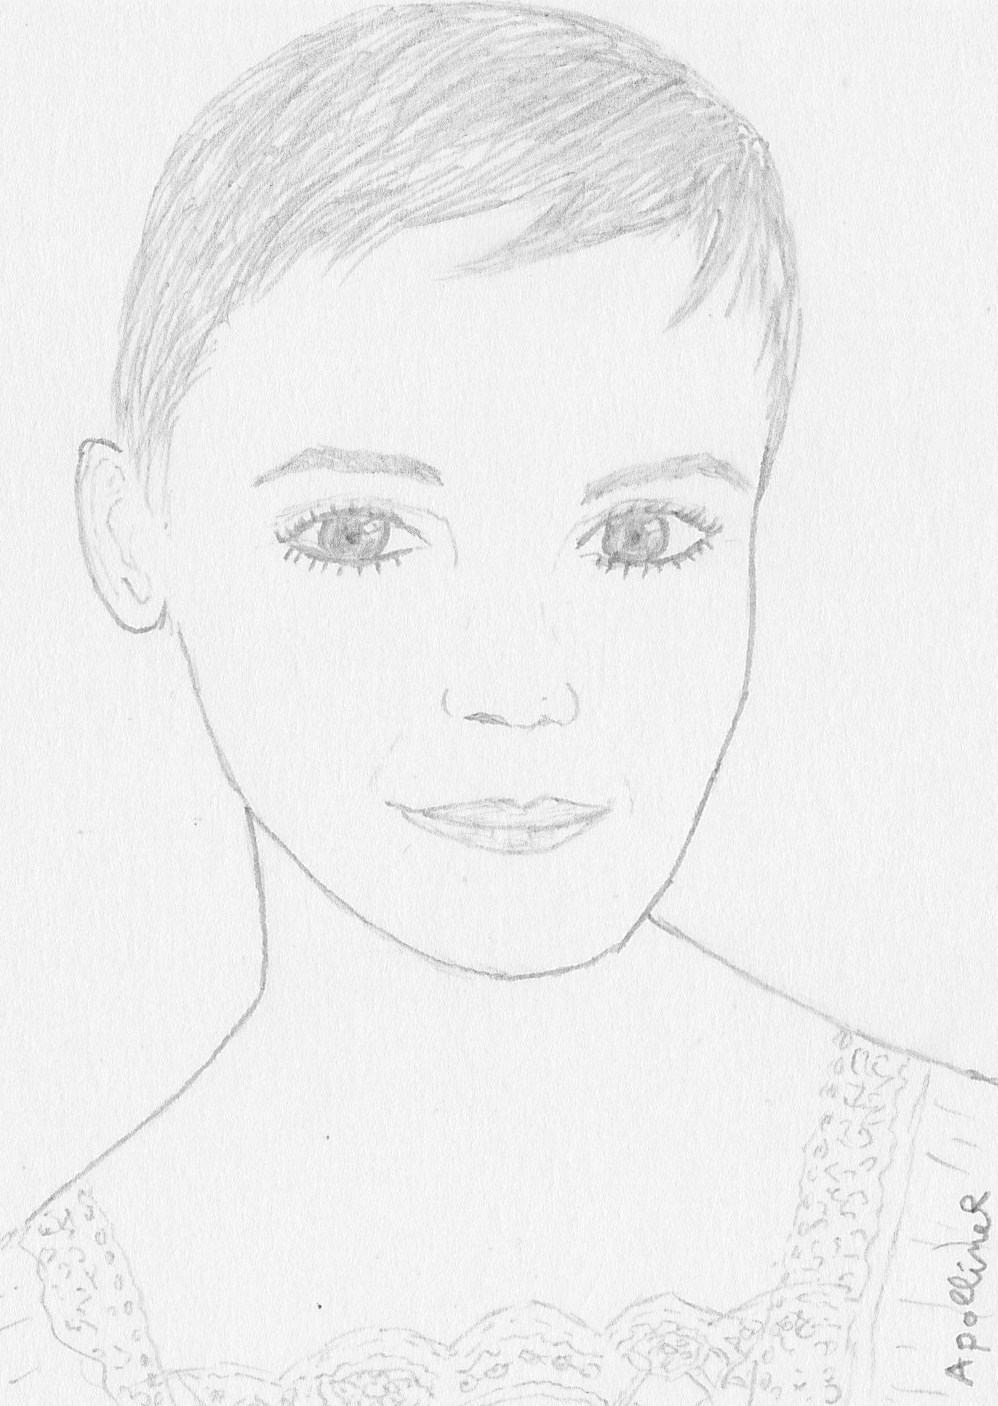 dessin de la coupe garonne d'Emma Watson